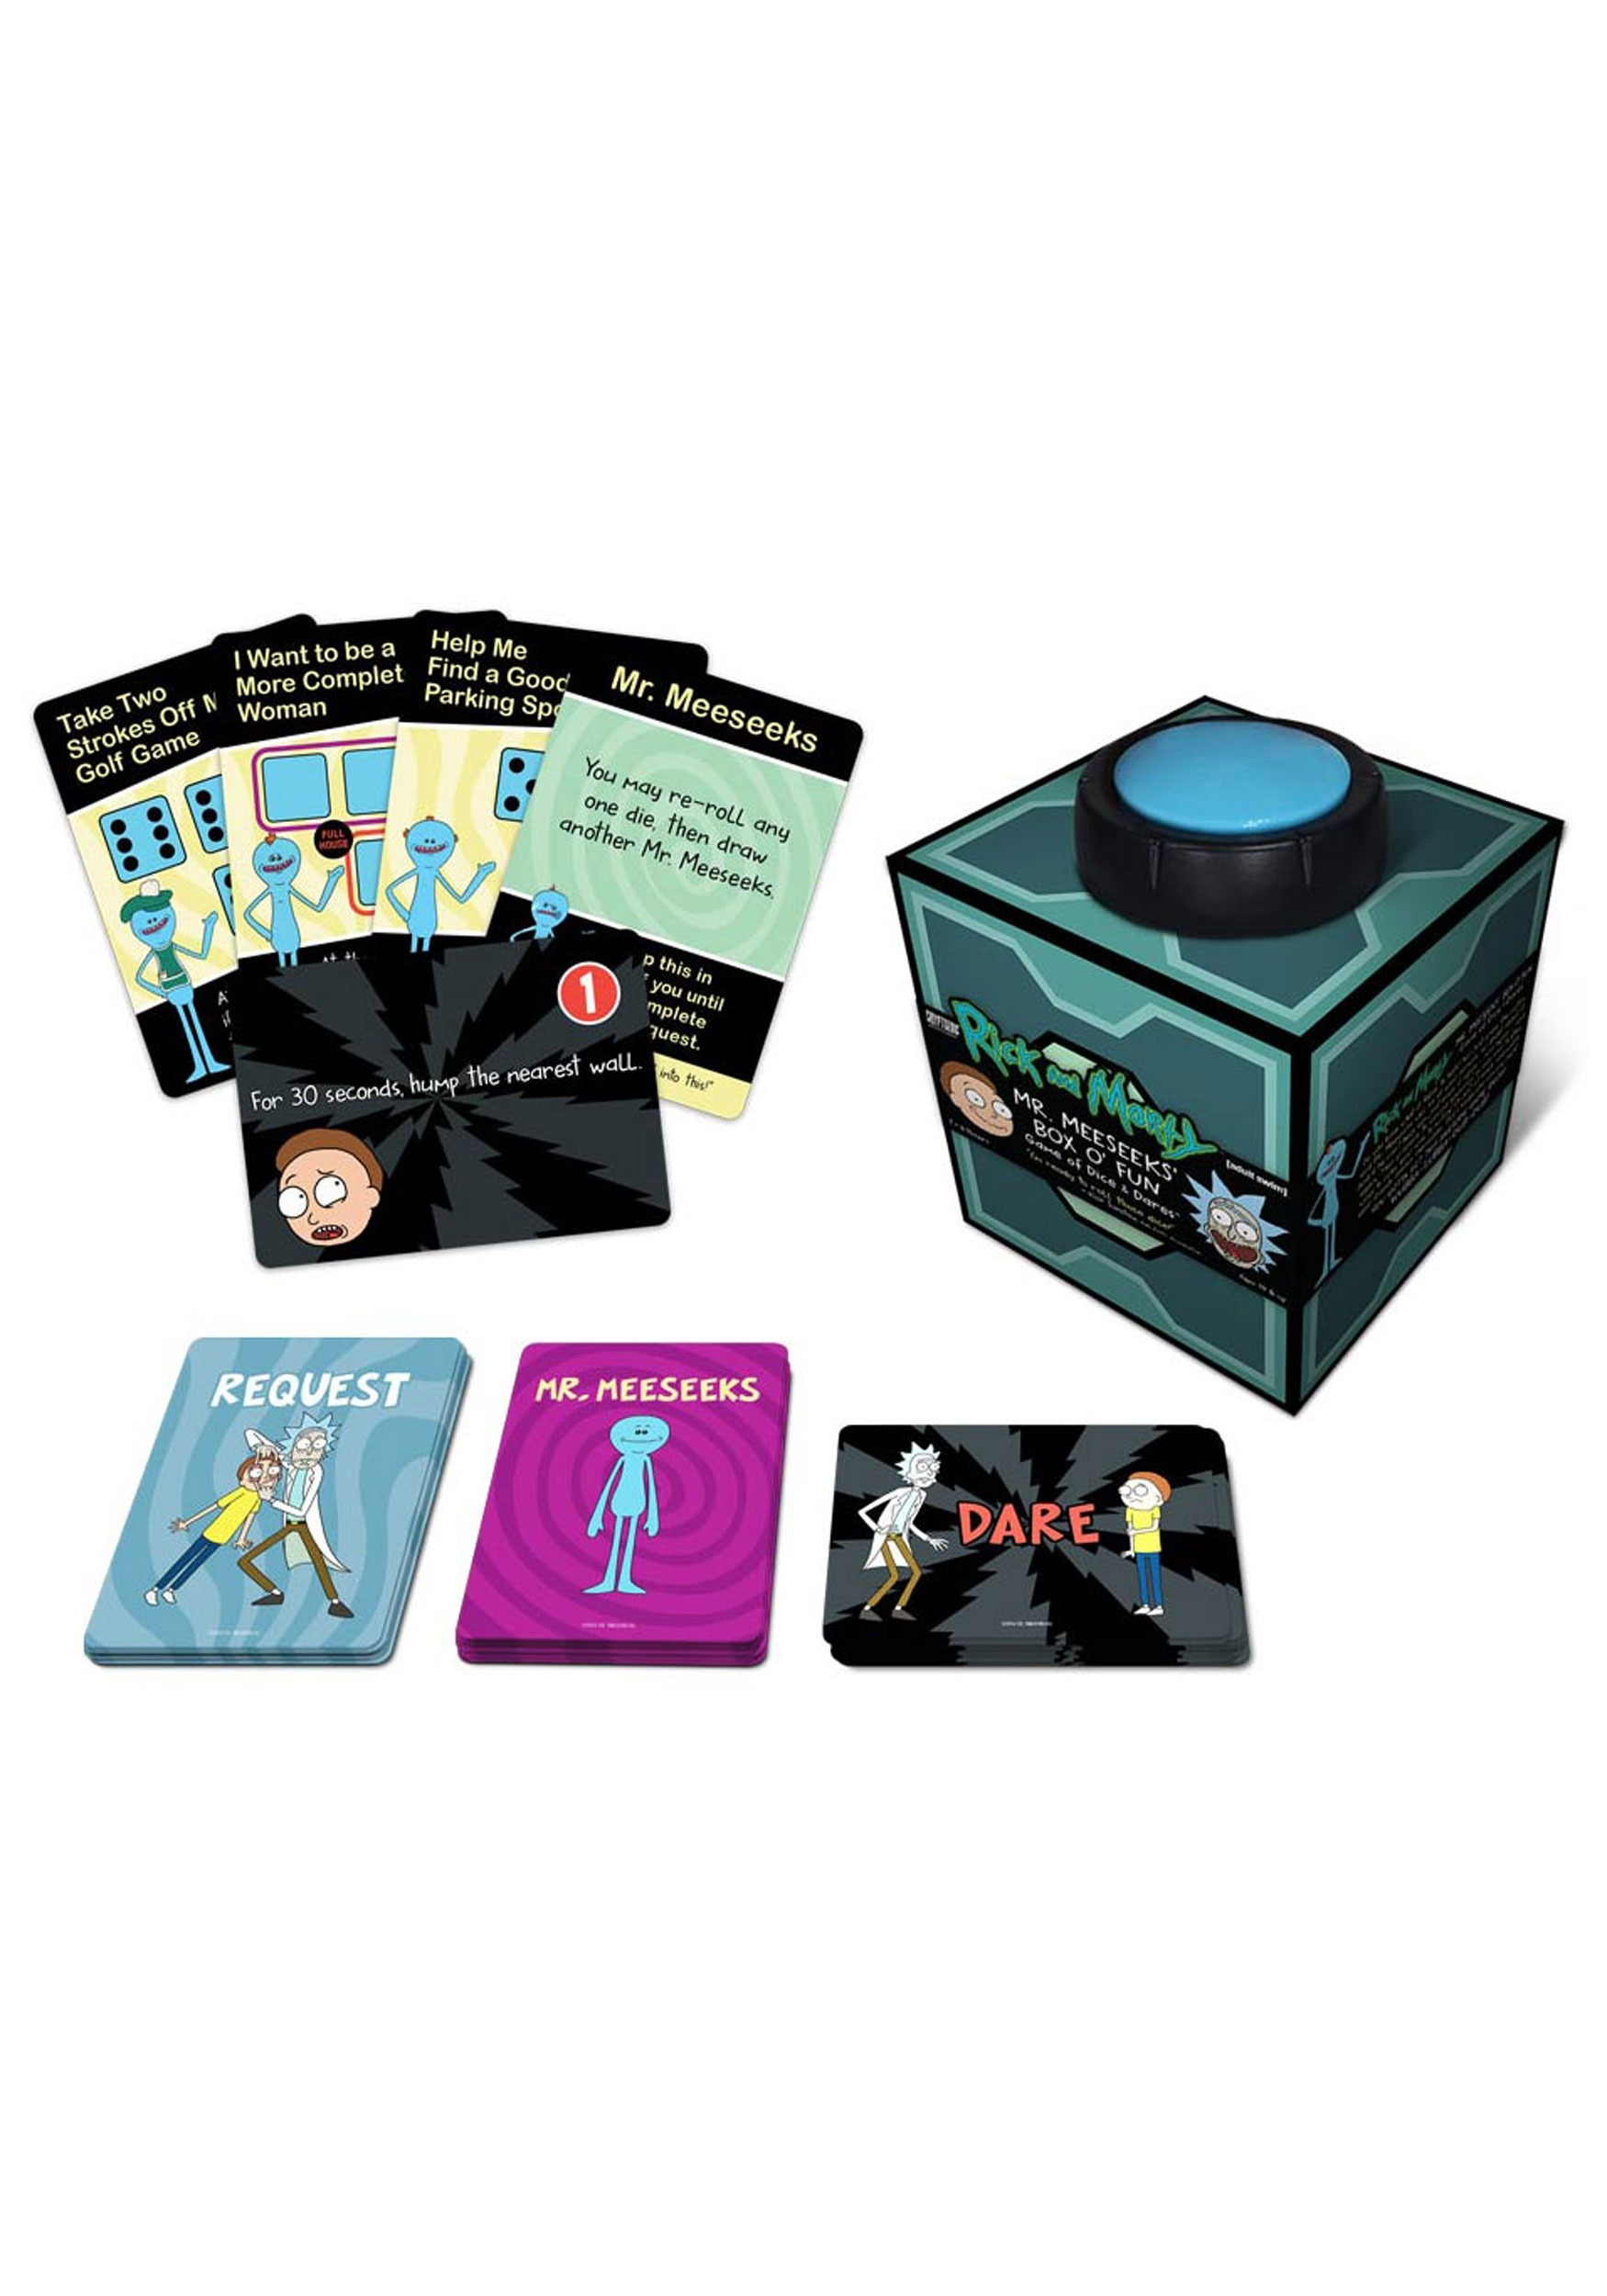 Mr._Meeseeks_Box_O`_Fun_Adult_Party_Game:_Rick_and_Morty